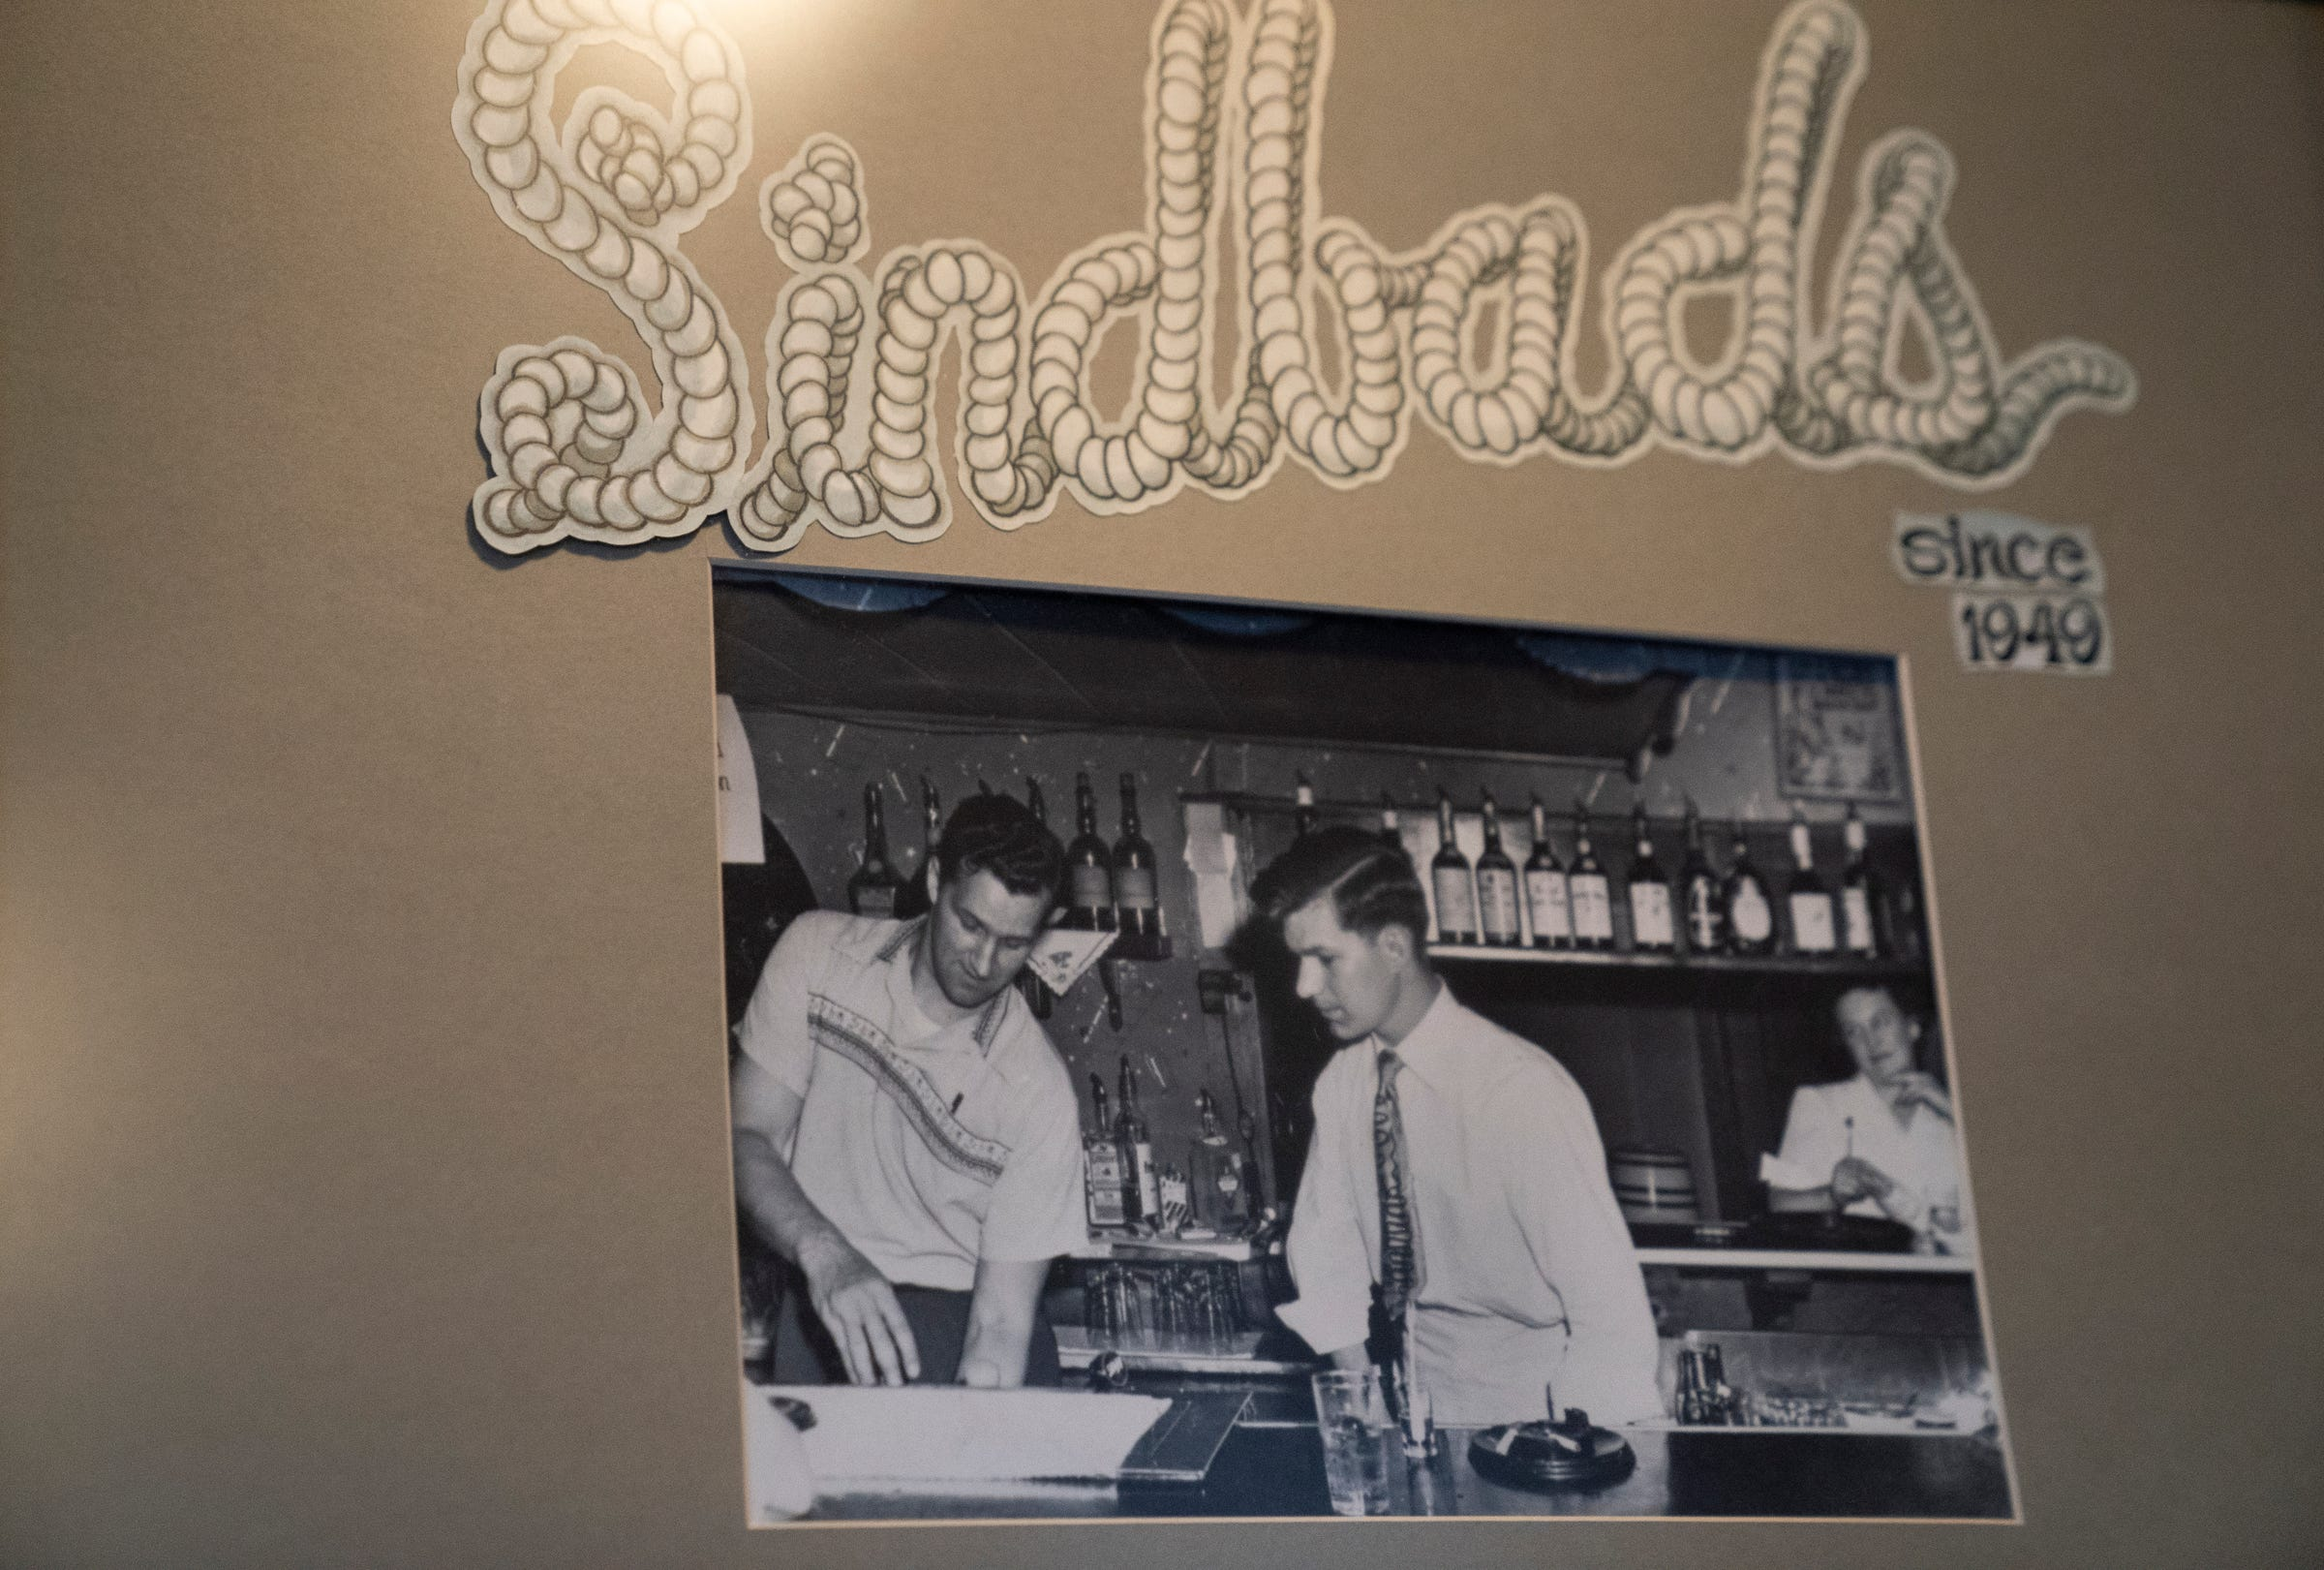 Hilaire (Van) Vanhollebeke, right and Prudent (Buster) Blancke in a photo hanging on the wall at Sindbad's. Blancke started the family-owned restaurant in 1949.